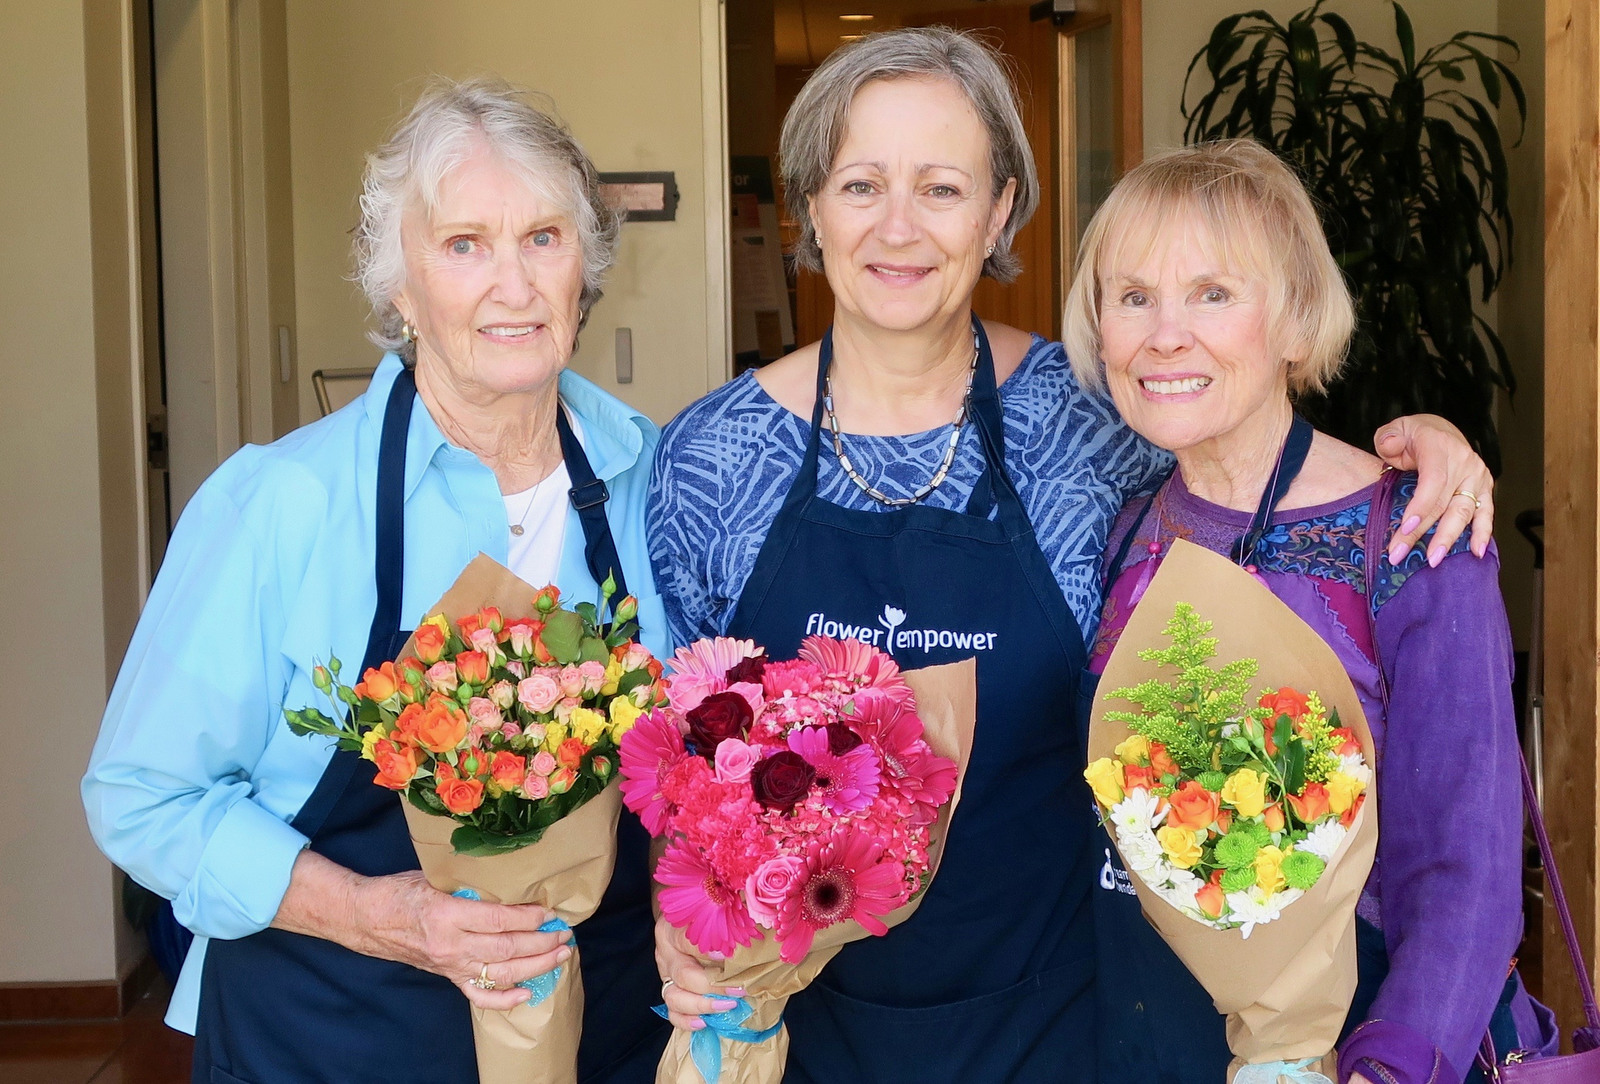 Volunteer Kathleen Ranney, VP of Programs Barbara Schoch, and volunteer Sidonia Slaff.